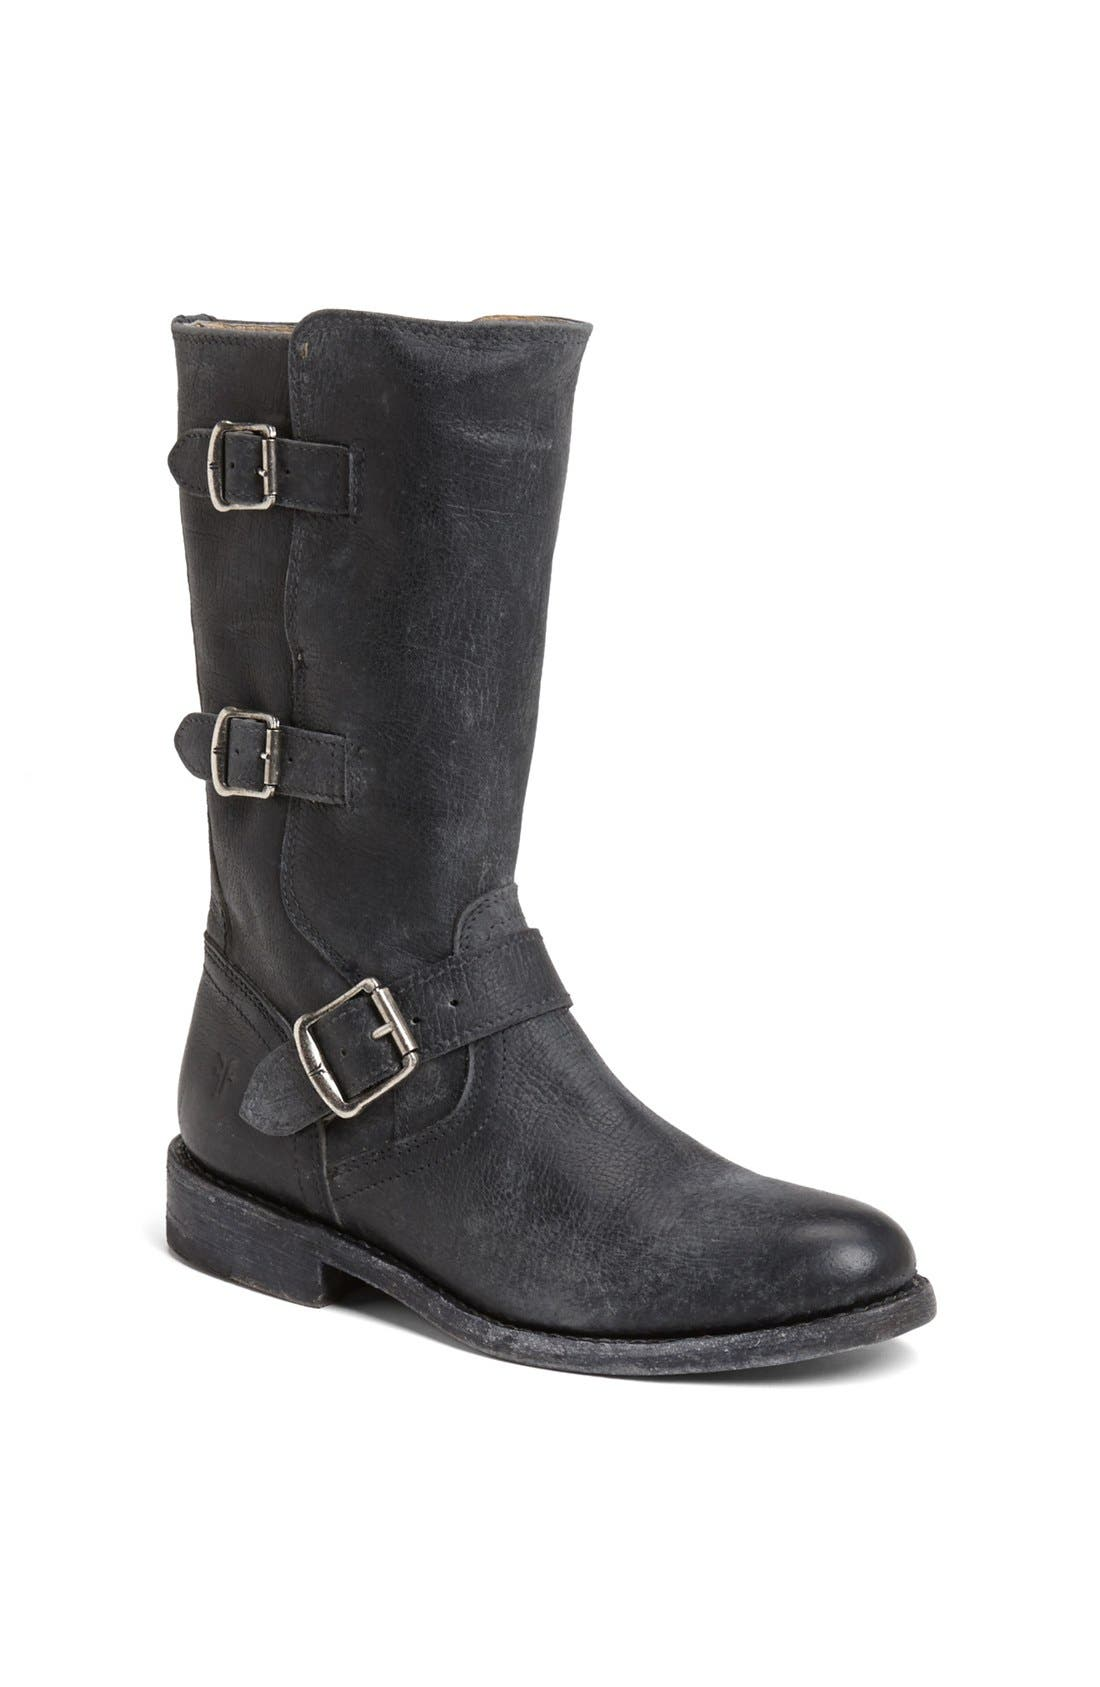 Main Image - Frye 'Jayden' Leather Moto Boot